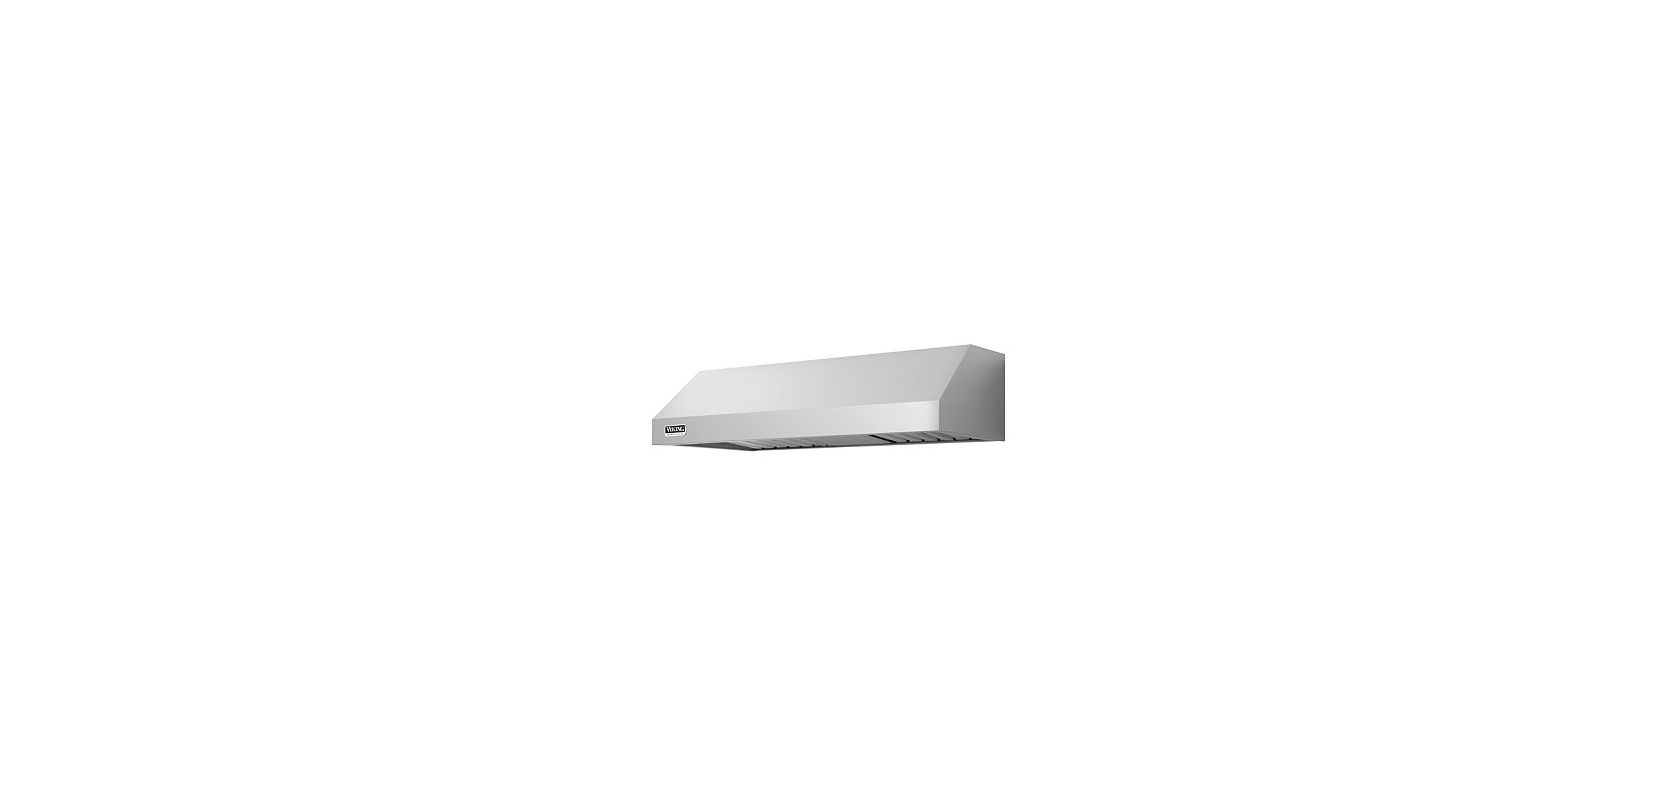 Viking VWH3010 460 CFM 30 Inch Wide Wall Mounted Range Hood with Ventilator from photo